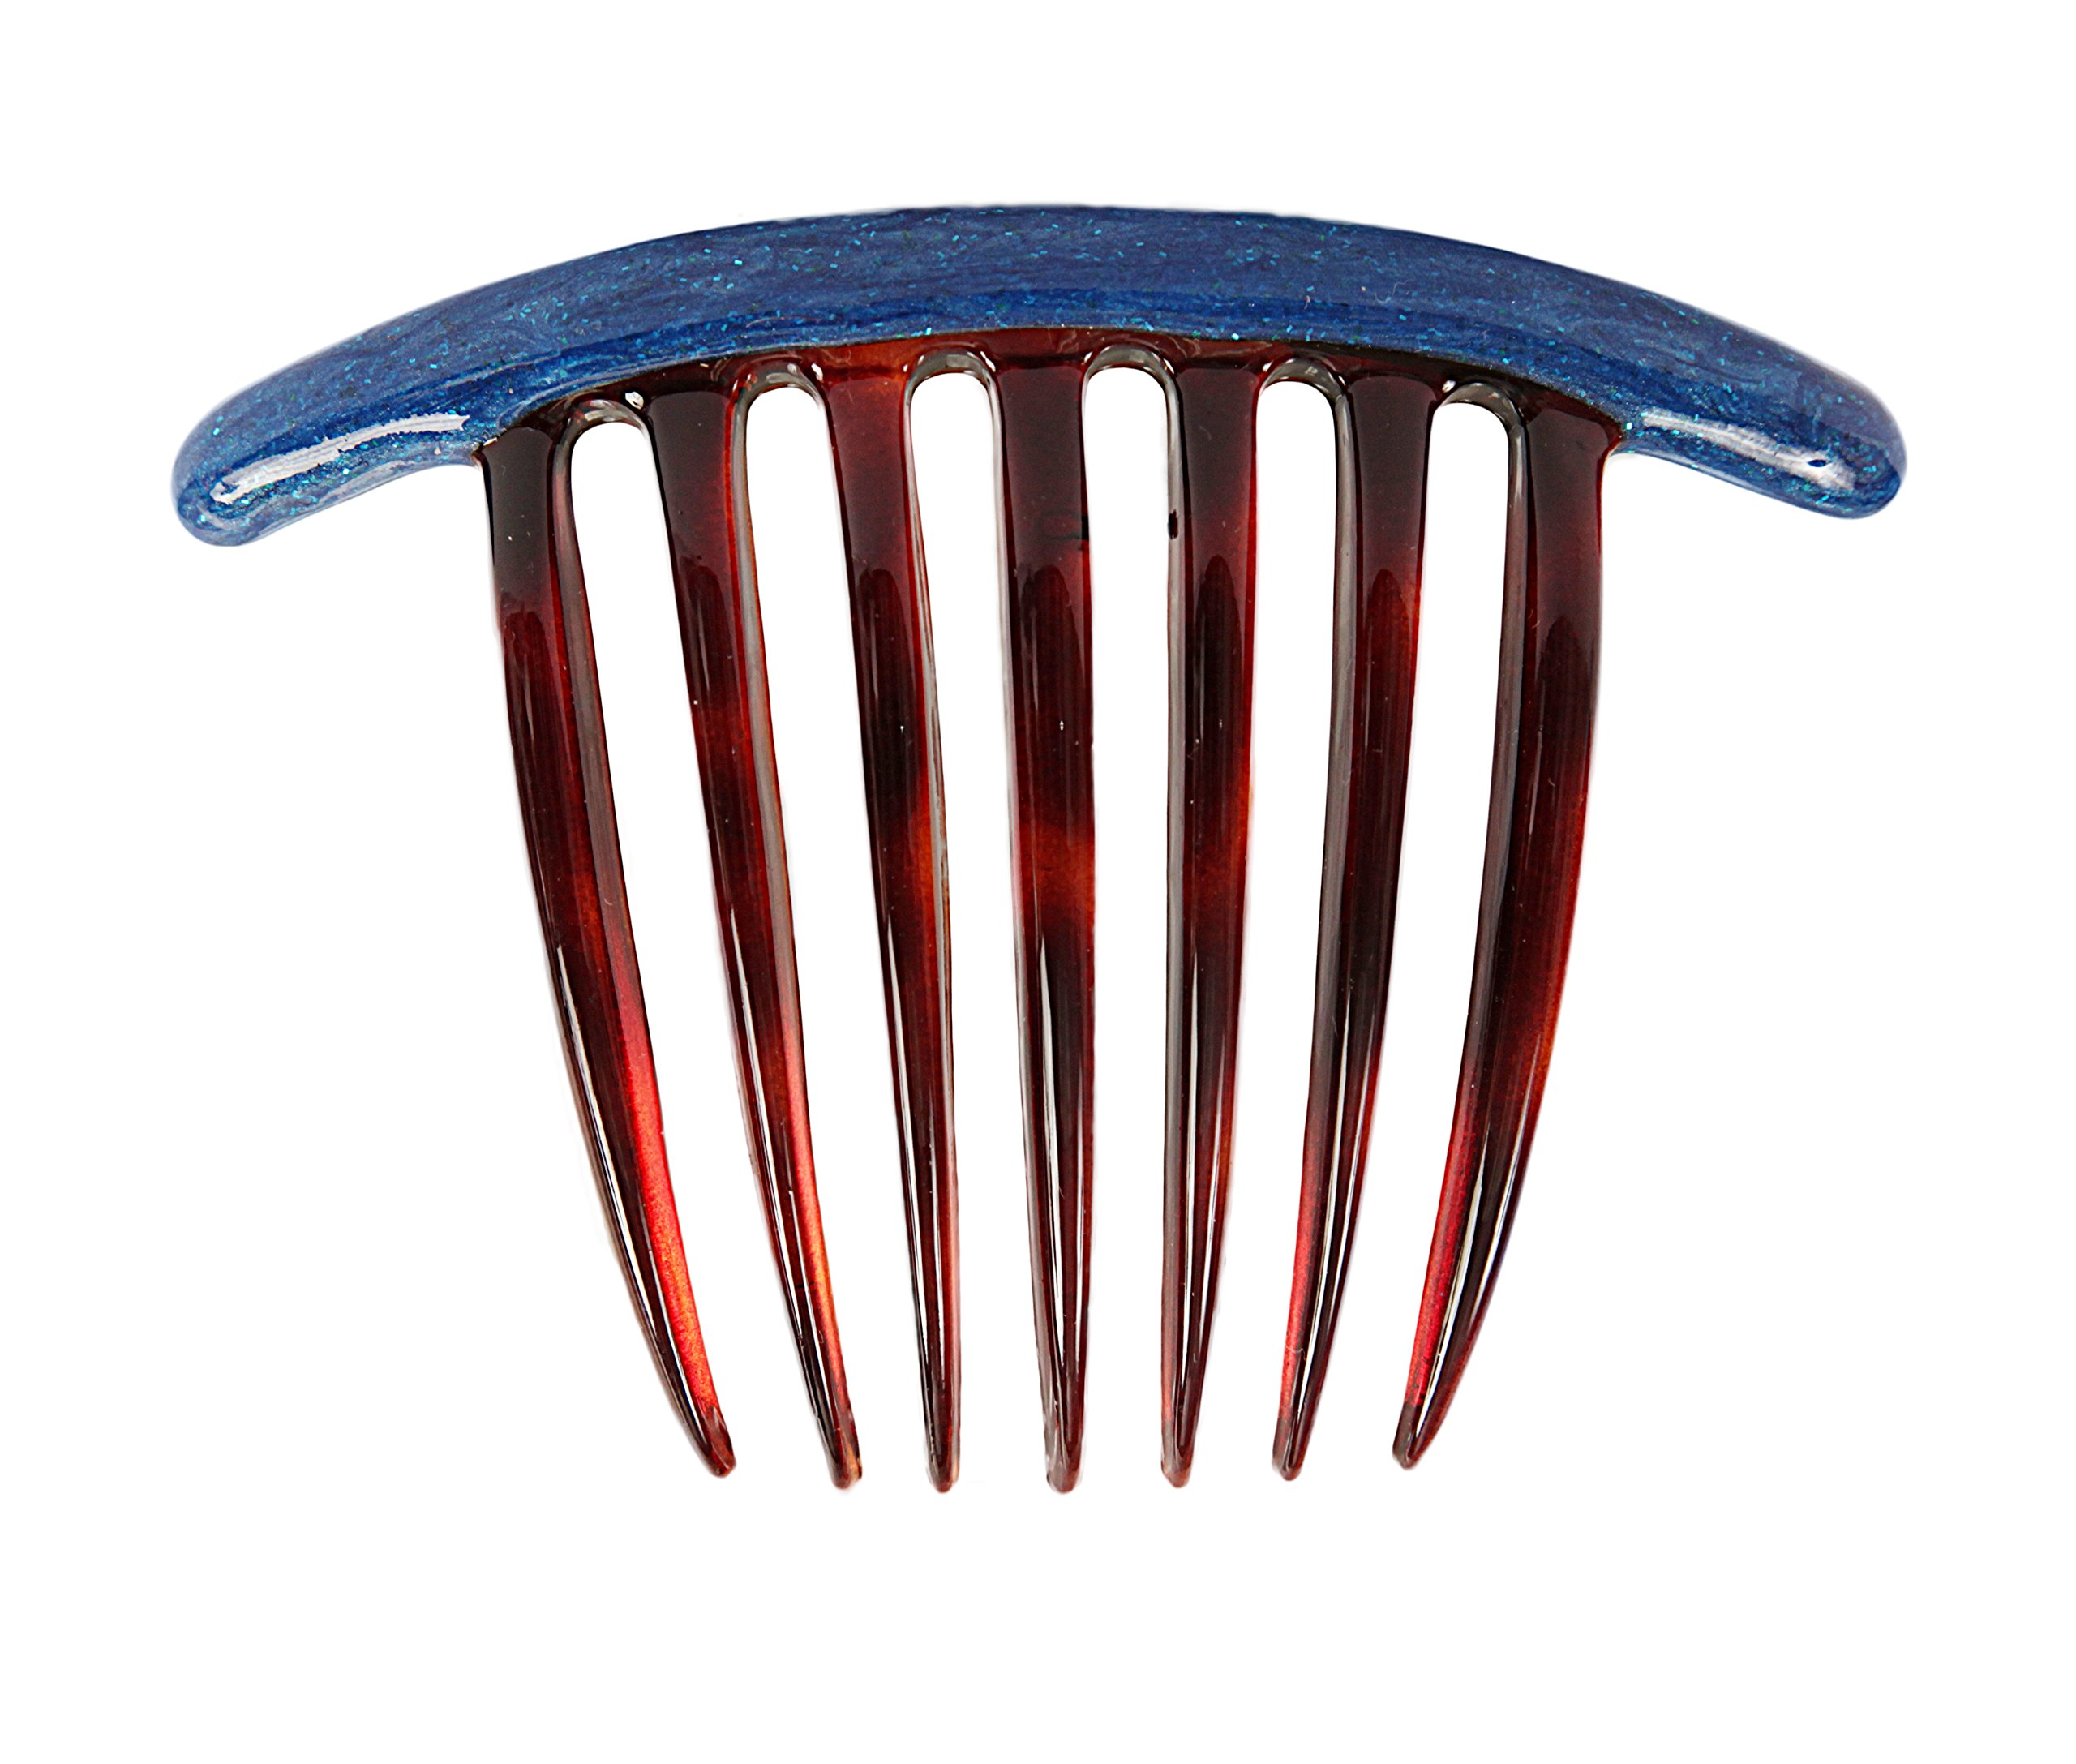 Caravan Tortoise Shell Decorated French Twist Comb with Blue Enamel